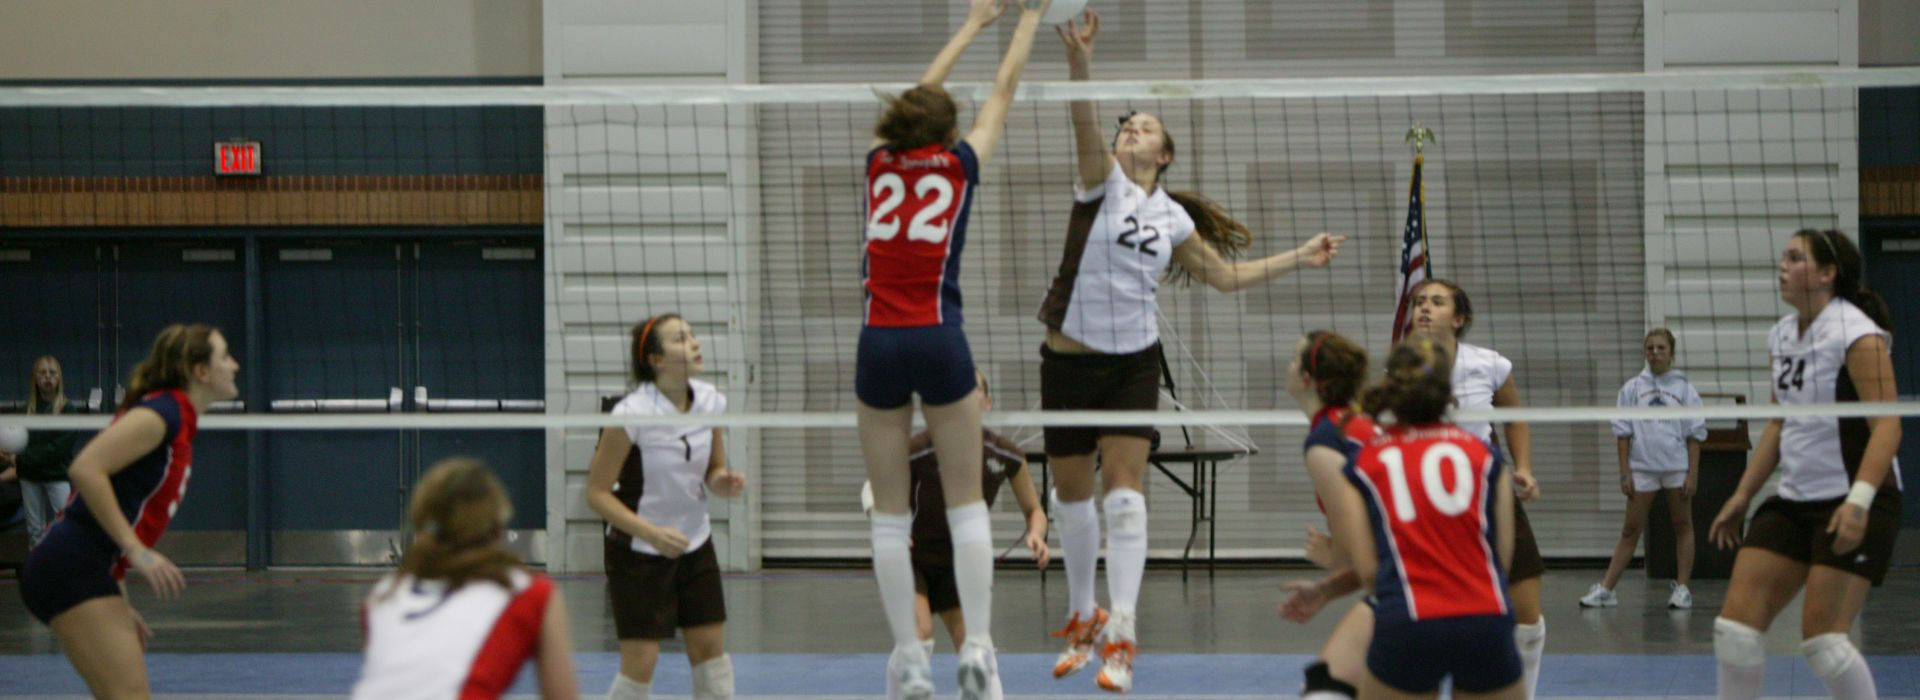 A volleyball tournament at the Pontchartrain Center in Jefferson Parish, LA